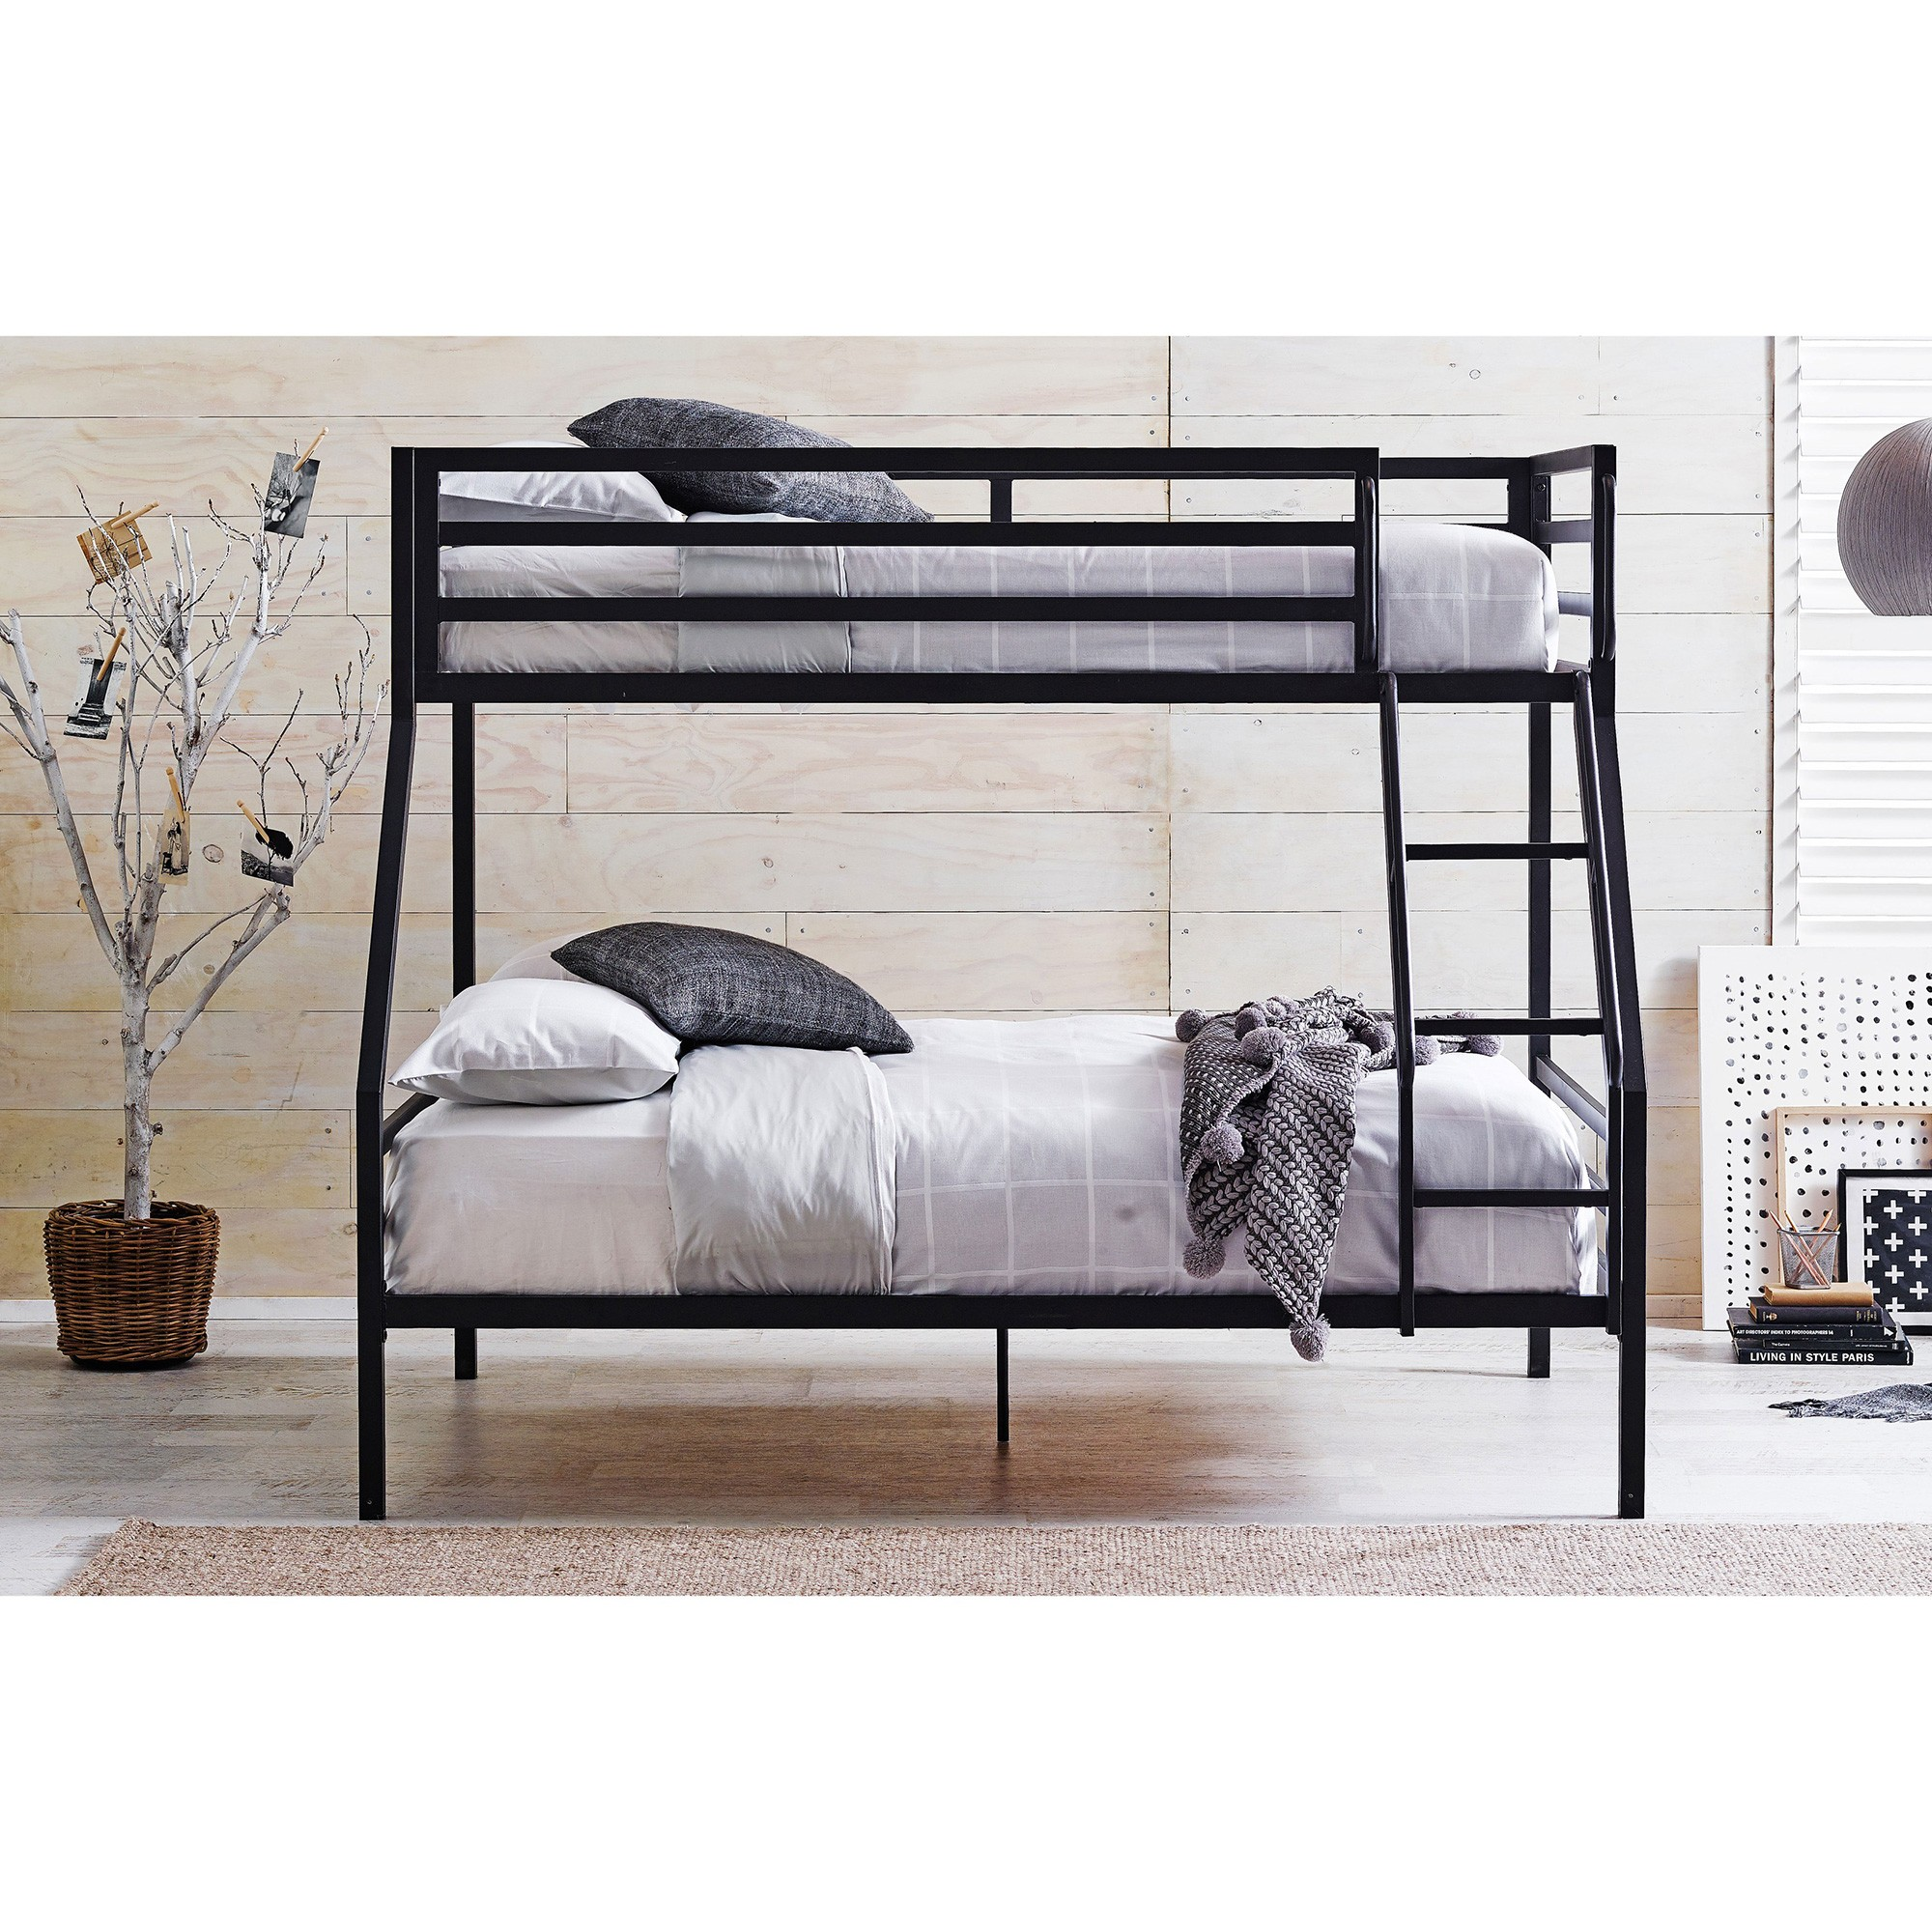 Castle Metal Bunk Bed, Trio, Black